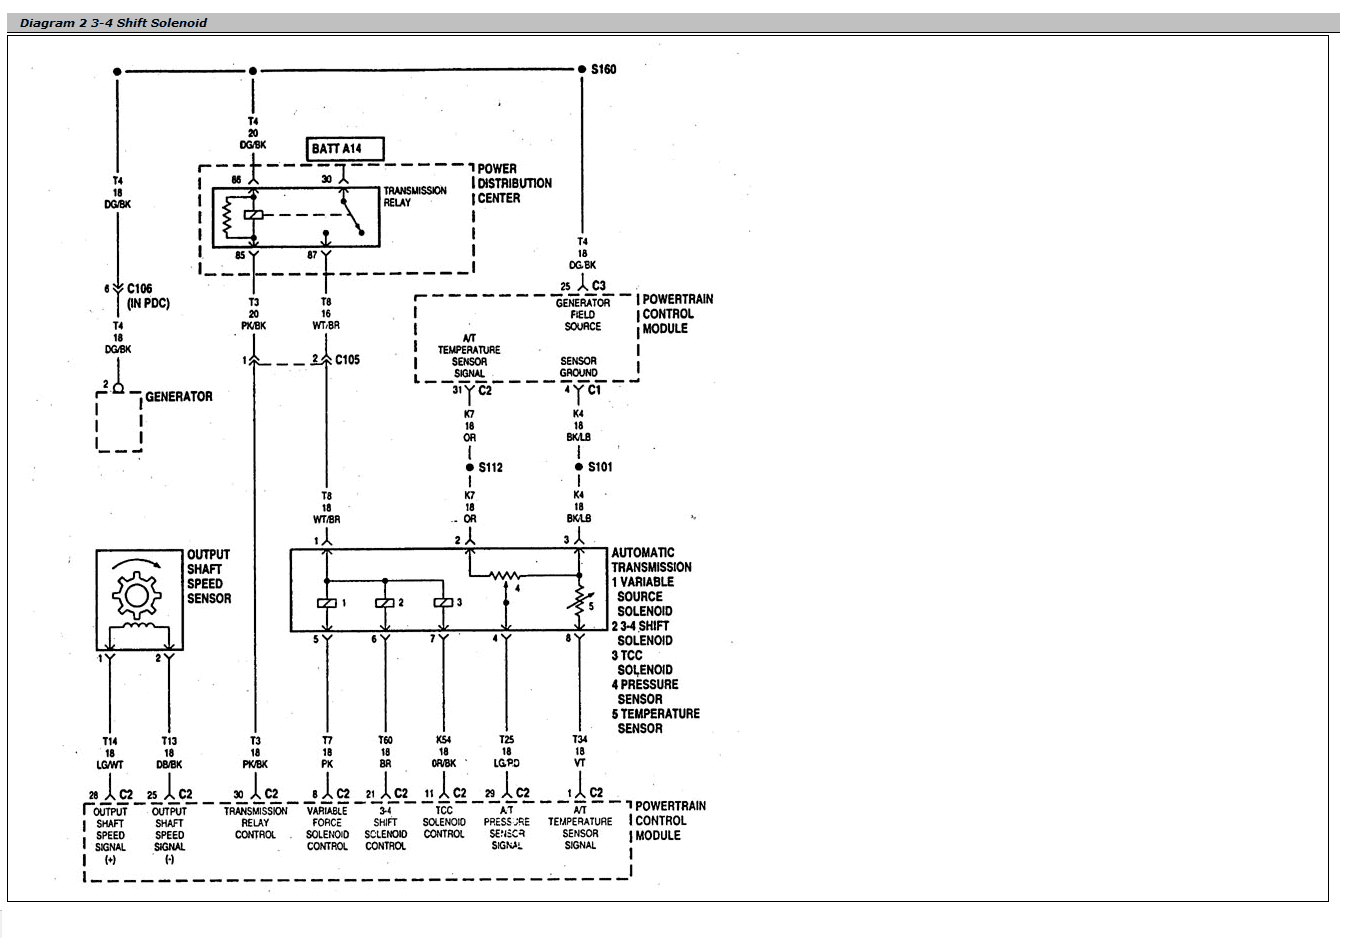 1994 Dodge Dakota Wiring Diagram Light 2006 Xr650l Wiring Diagram On Ai 2000 Ab14 Jeanjaures37 Fr